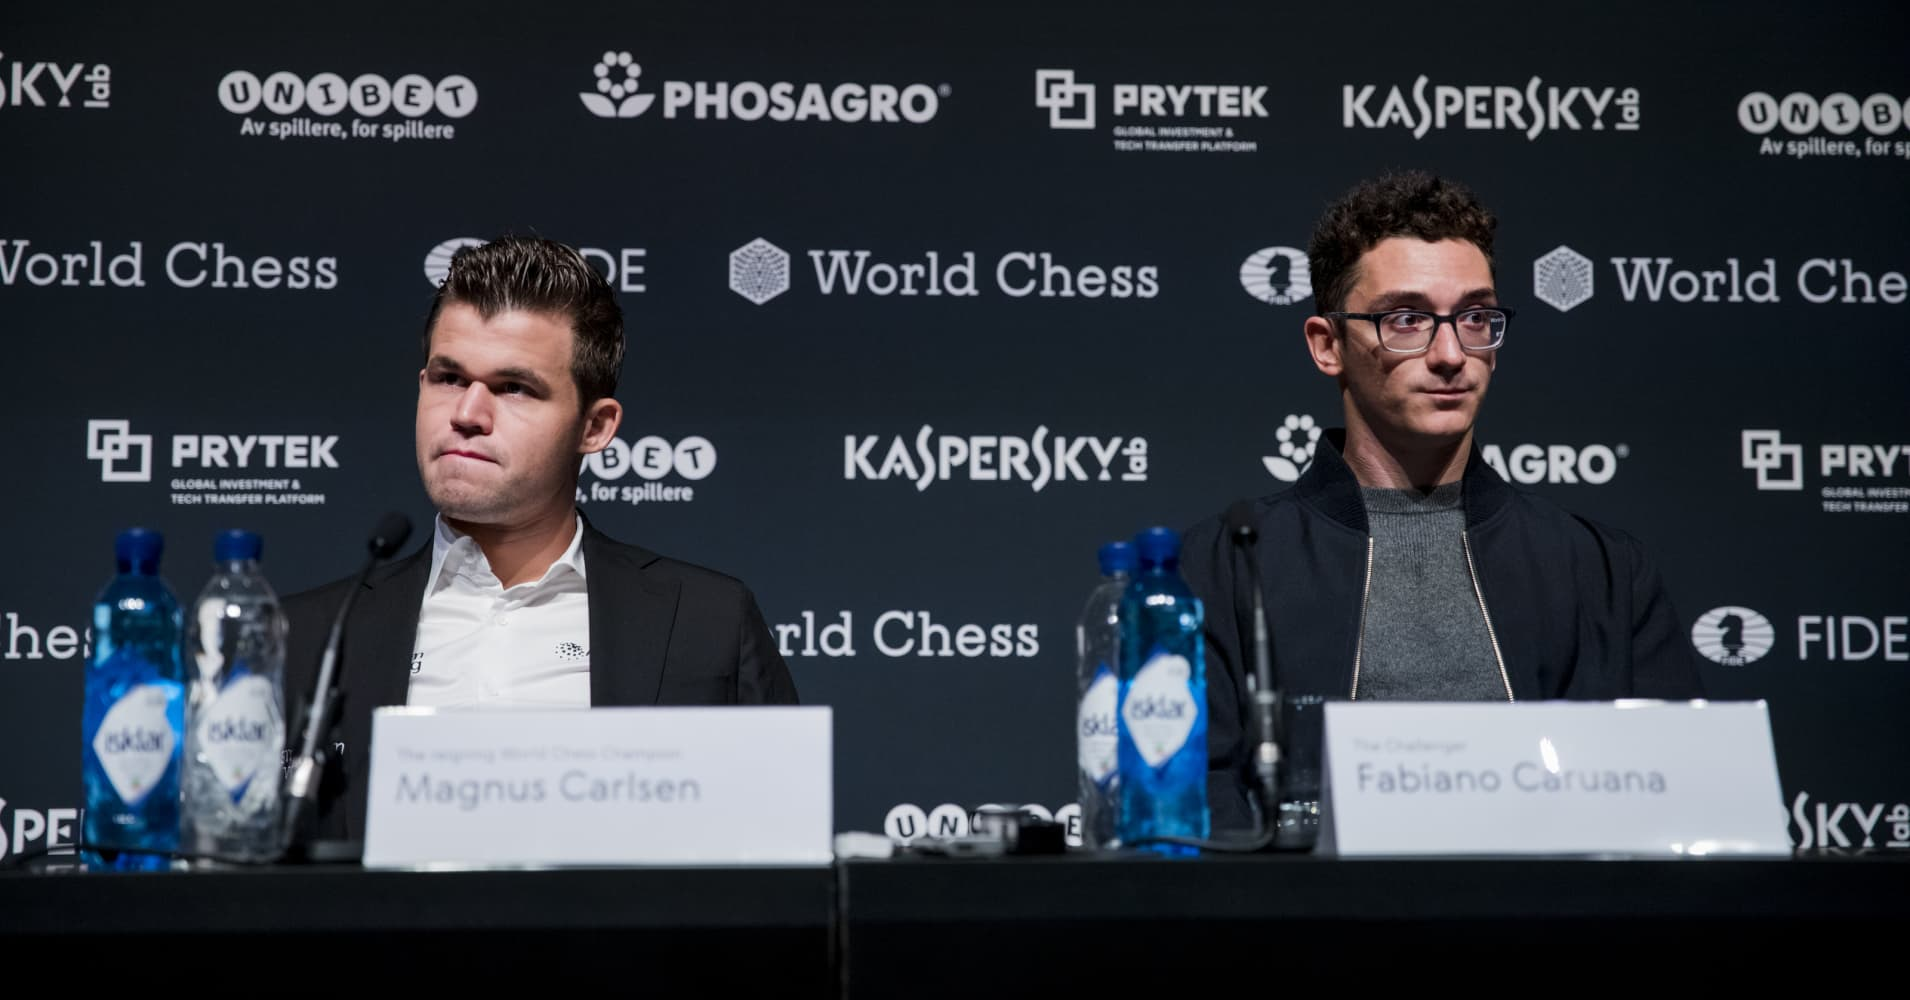 The US has a chance to have its first World Chess Champion since Bobby Fischer